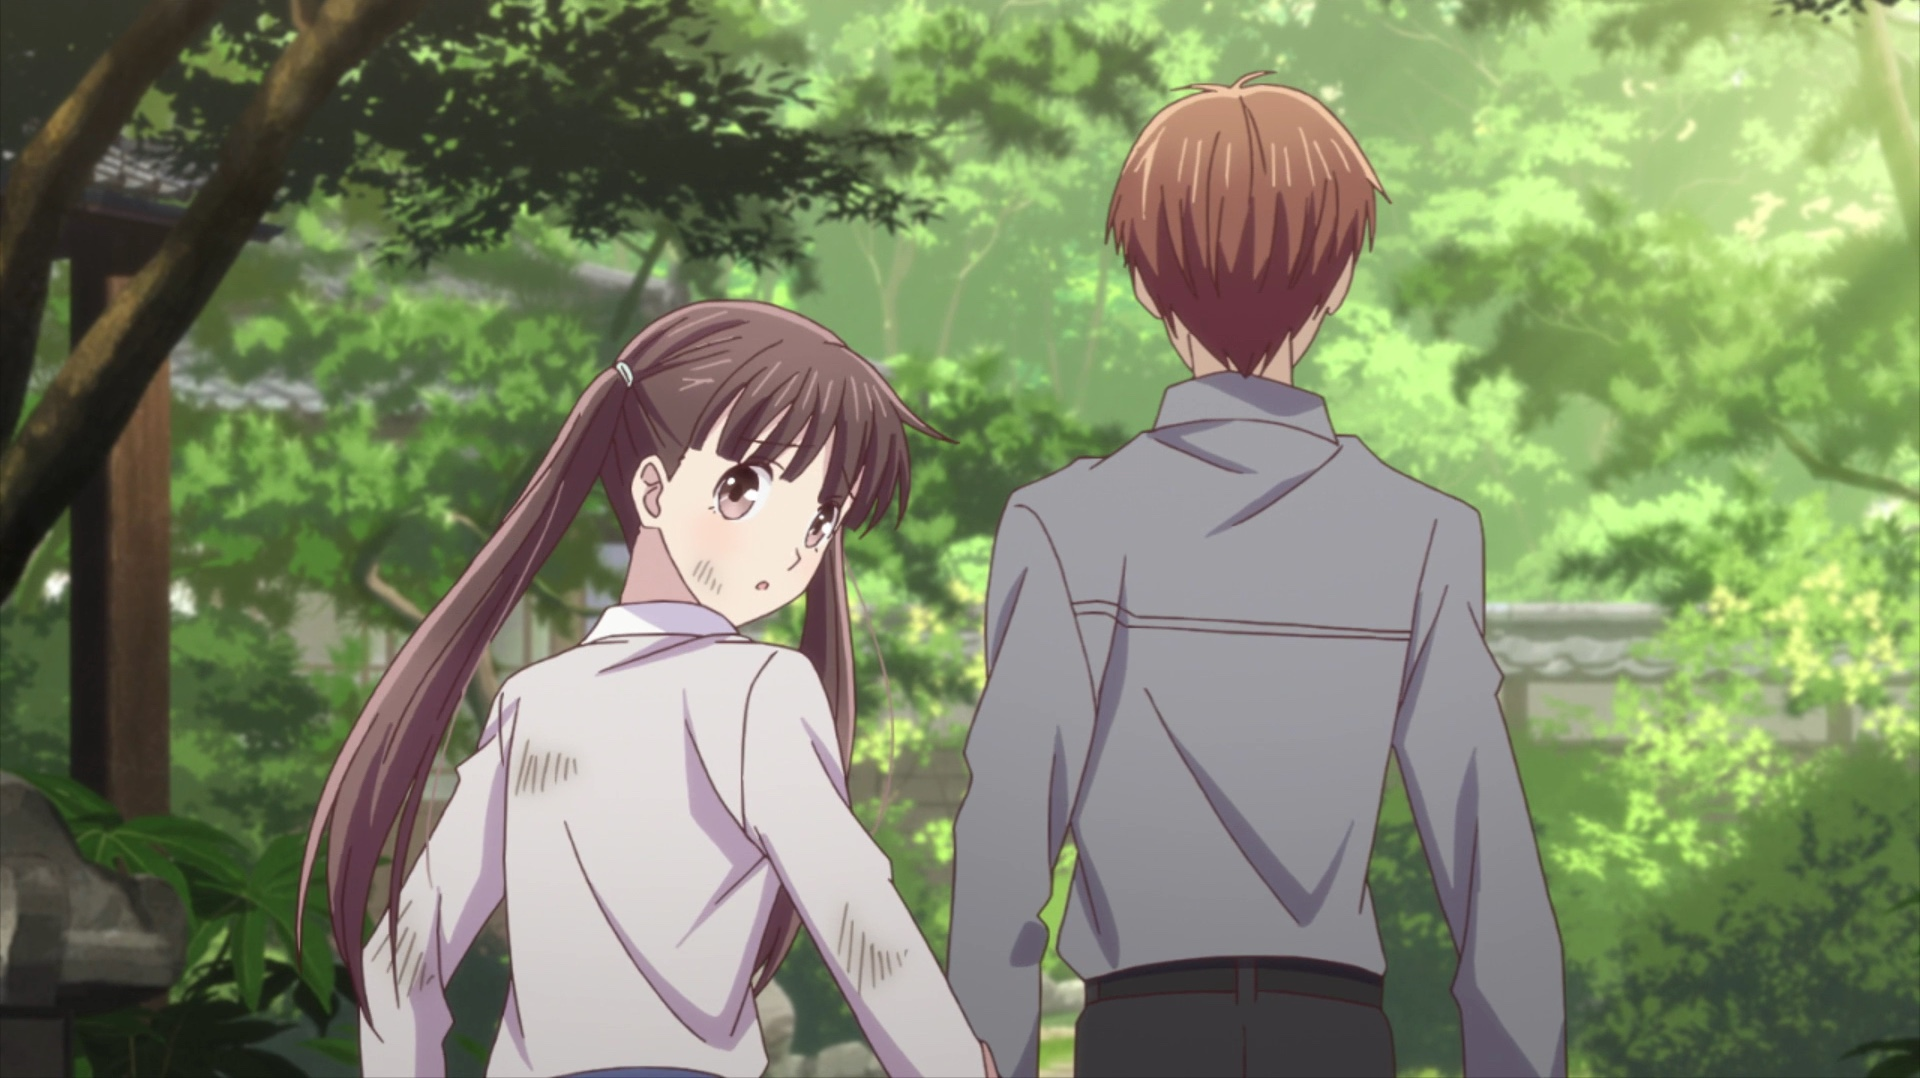 Fruits Basket Season 2 Episode 16 Review - Best In Show | Crow's World of  Anime